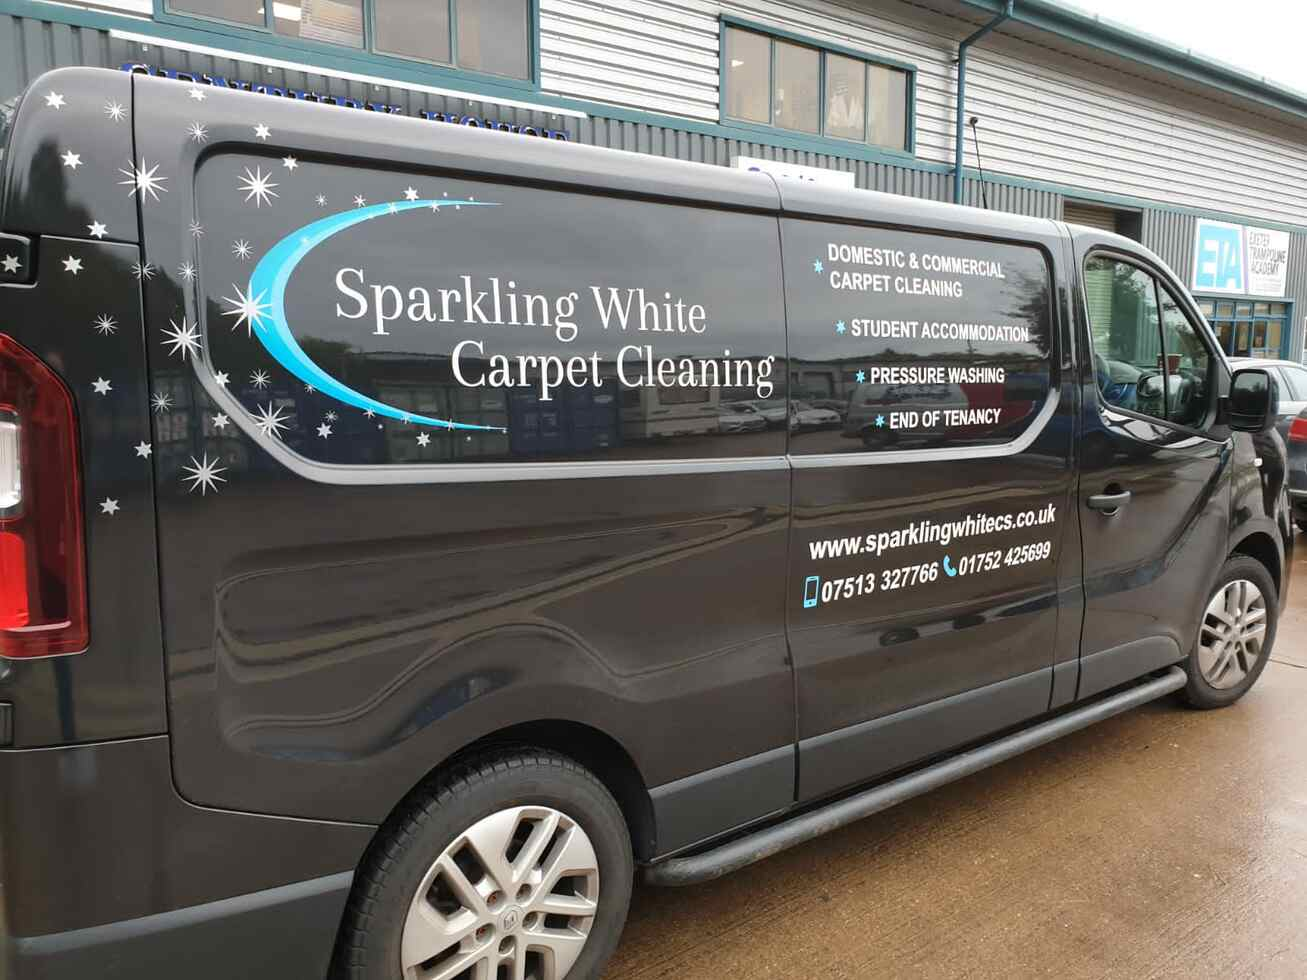 Sparkling White Carpet Cleaning